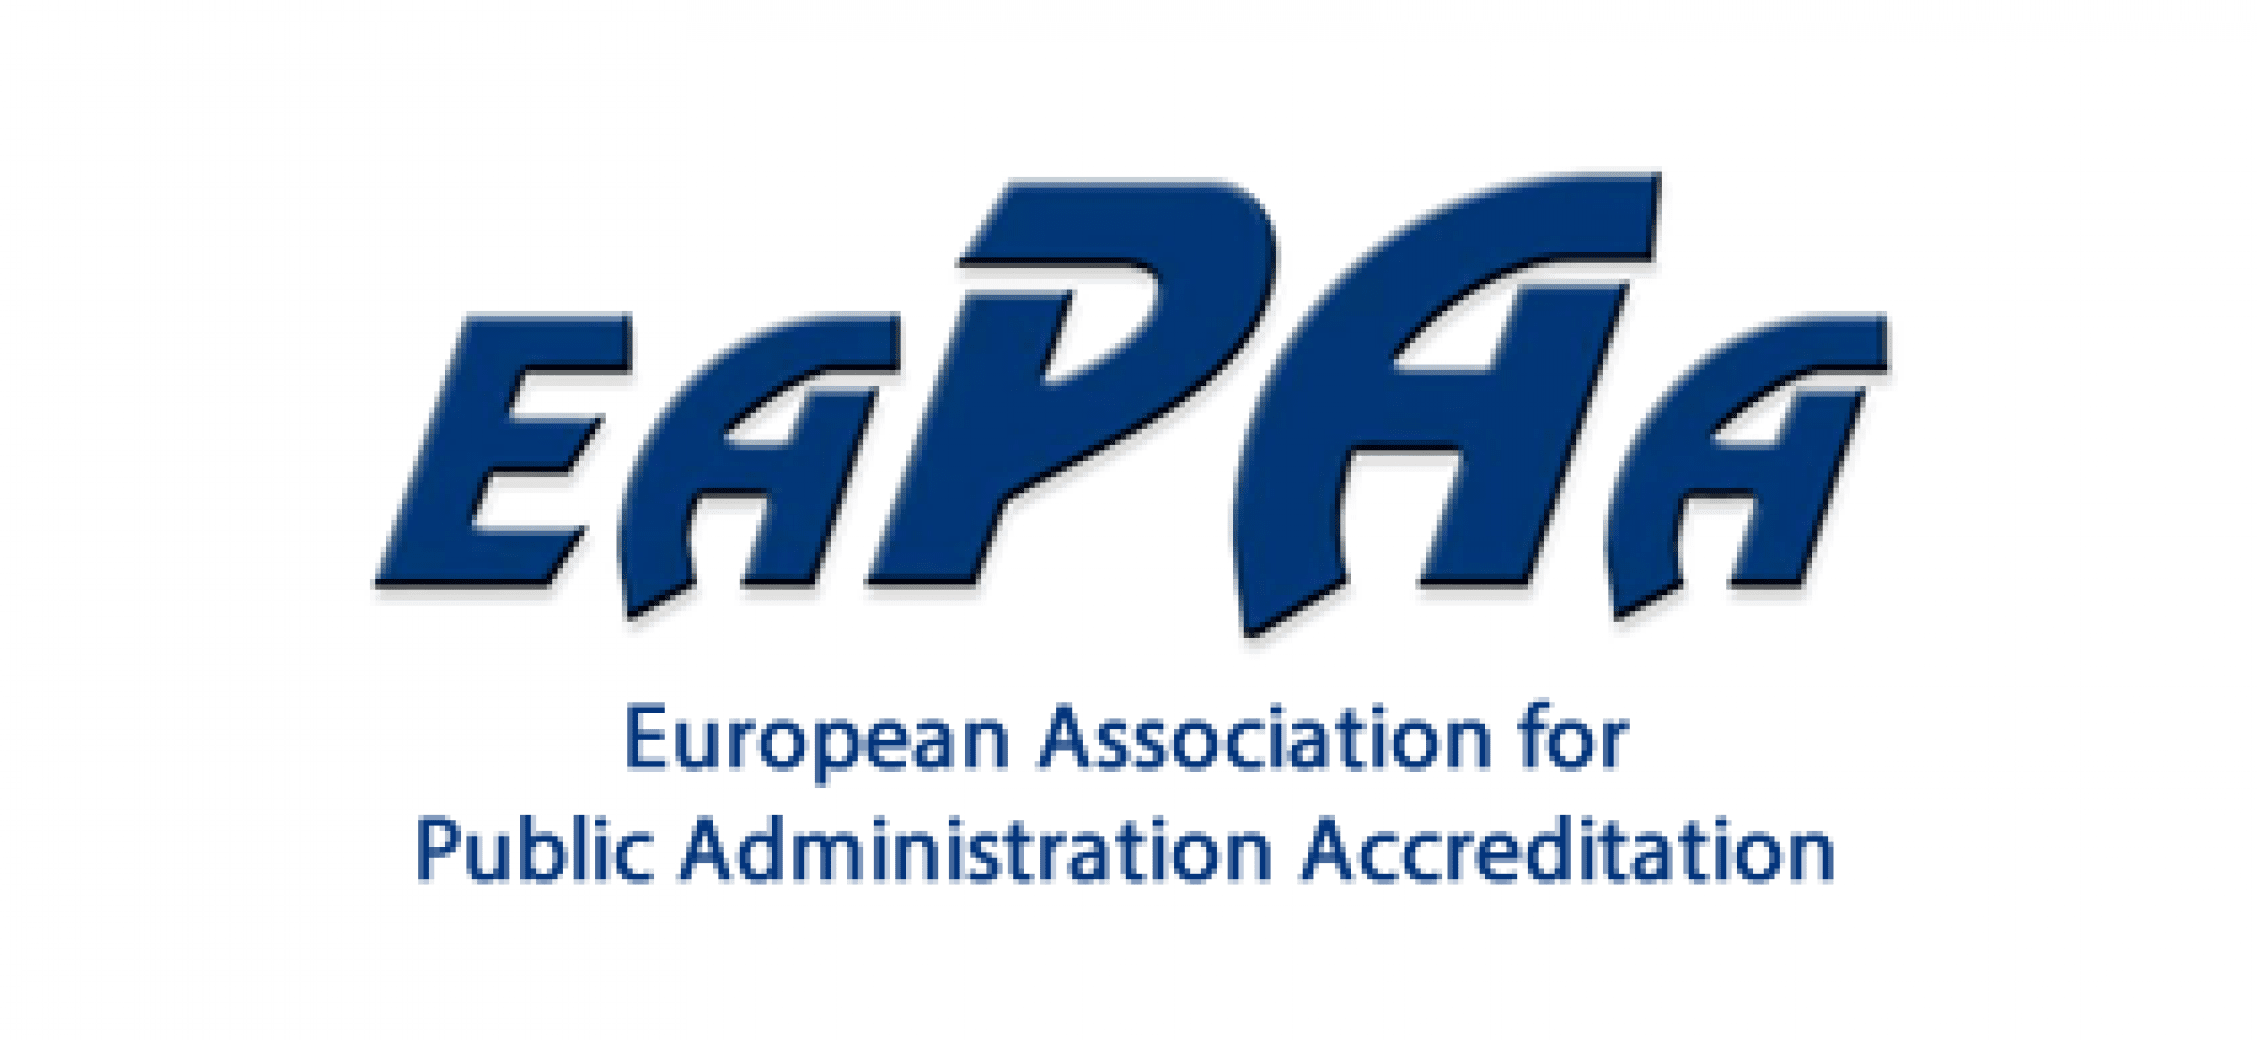 European Assiociation for Public Administration Accreditation (EAPPA)